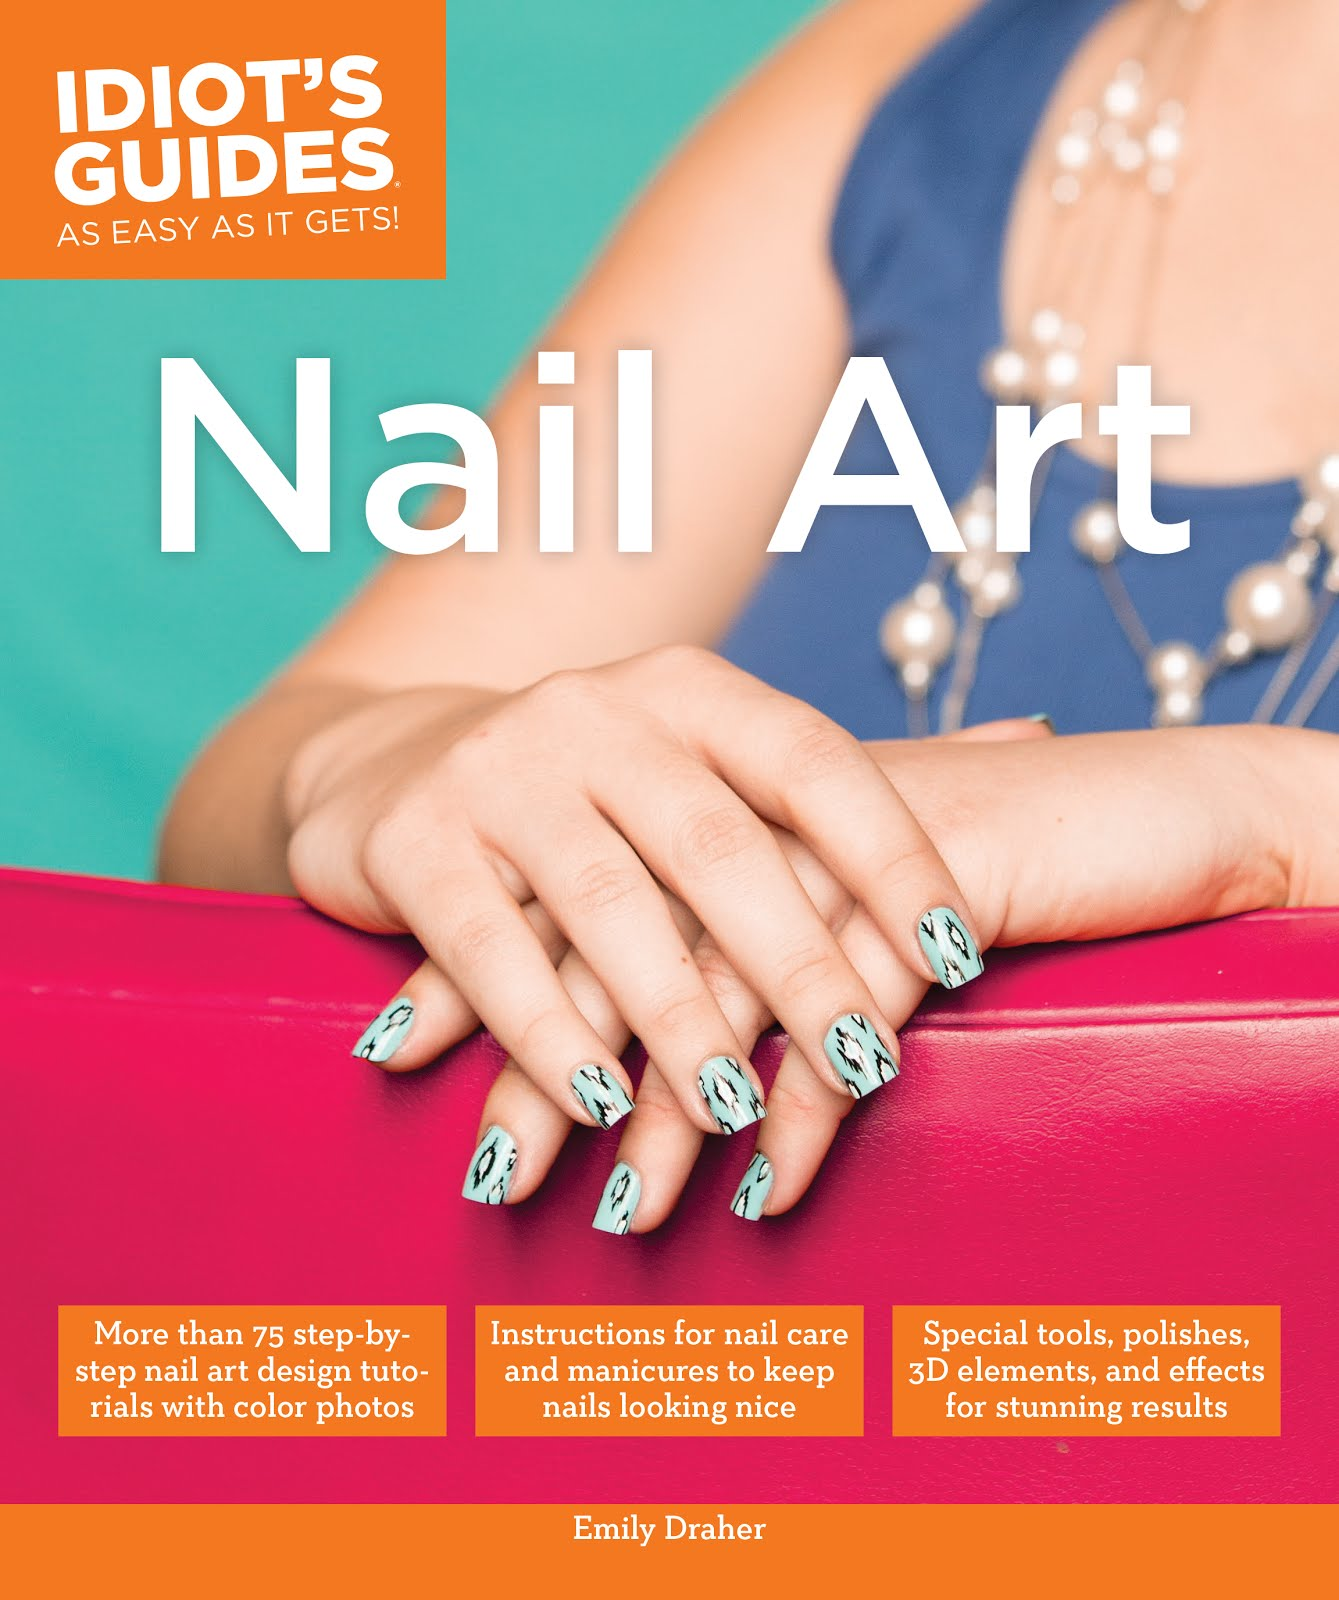 Idiot's Guides: Nail Art